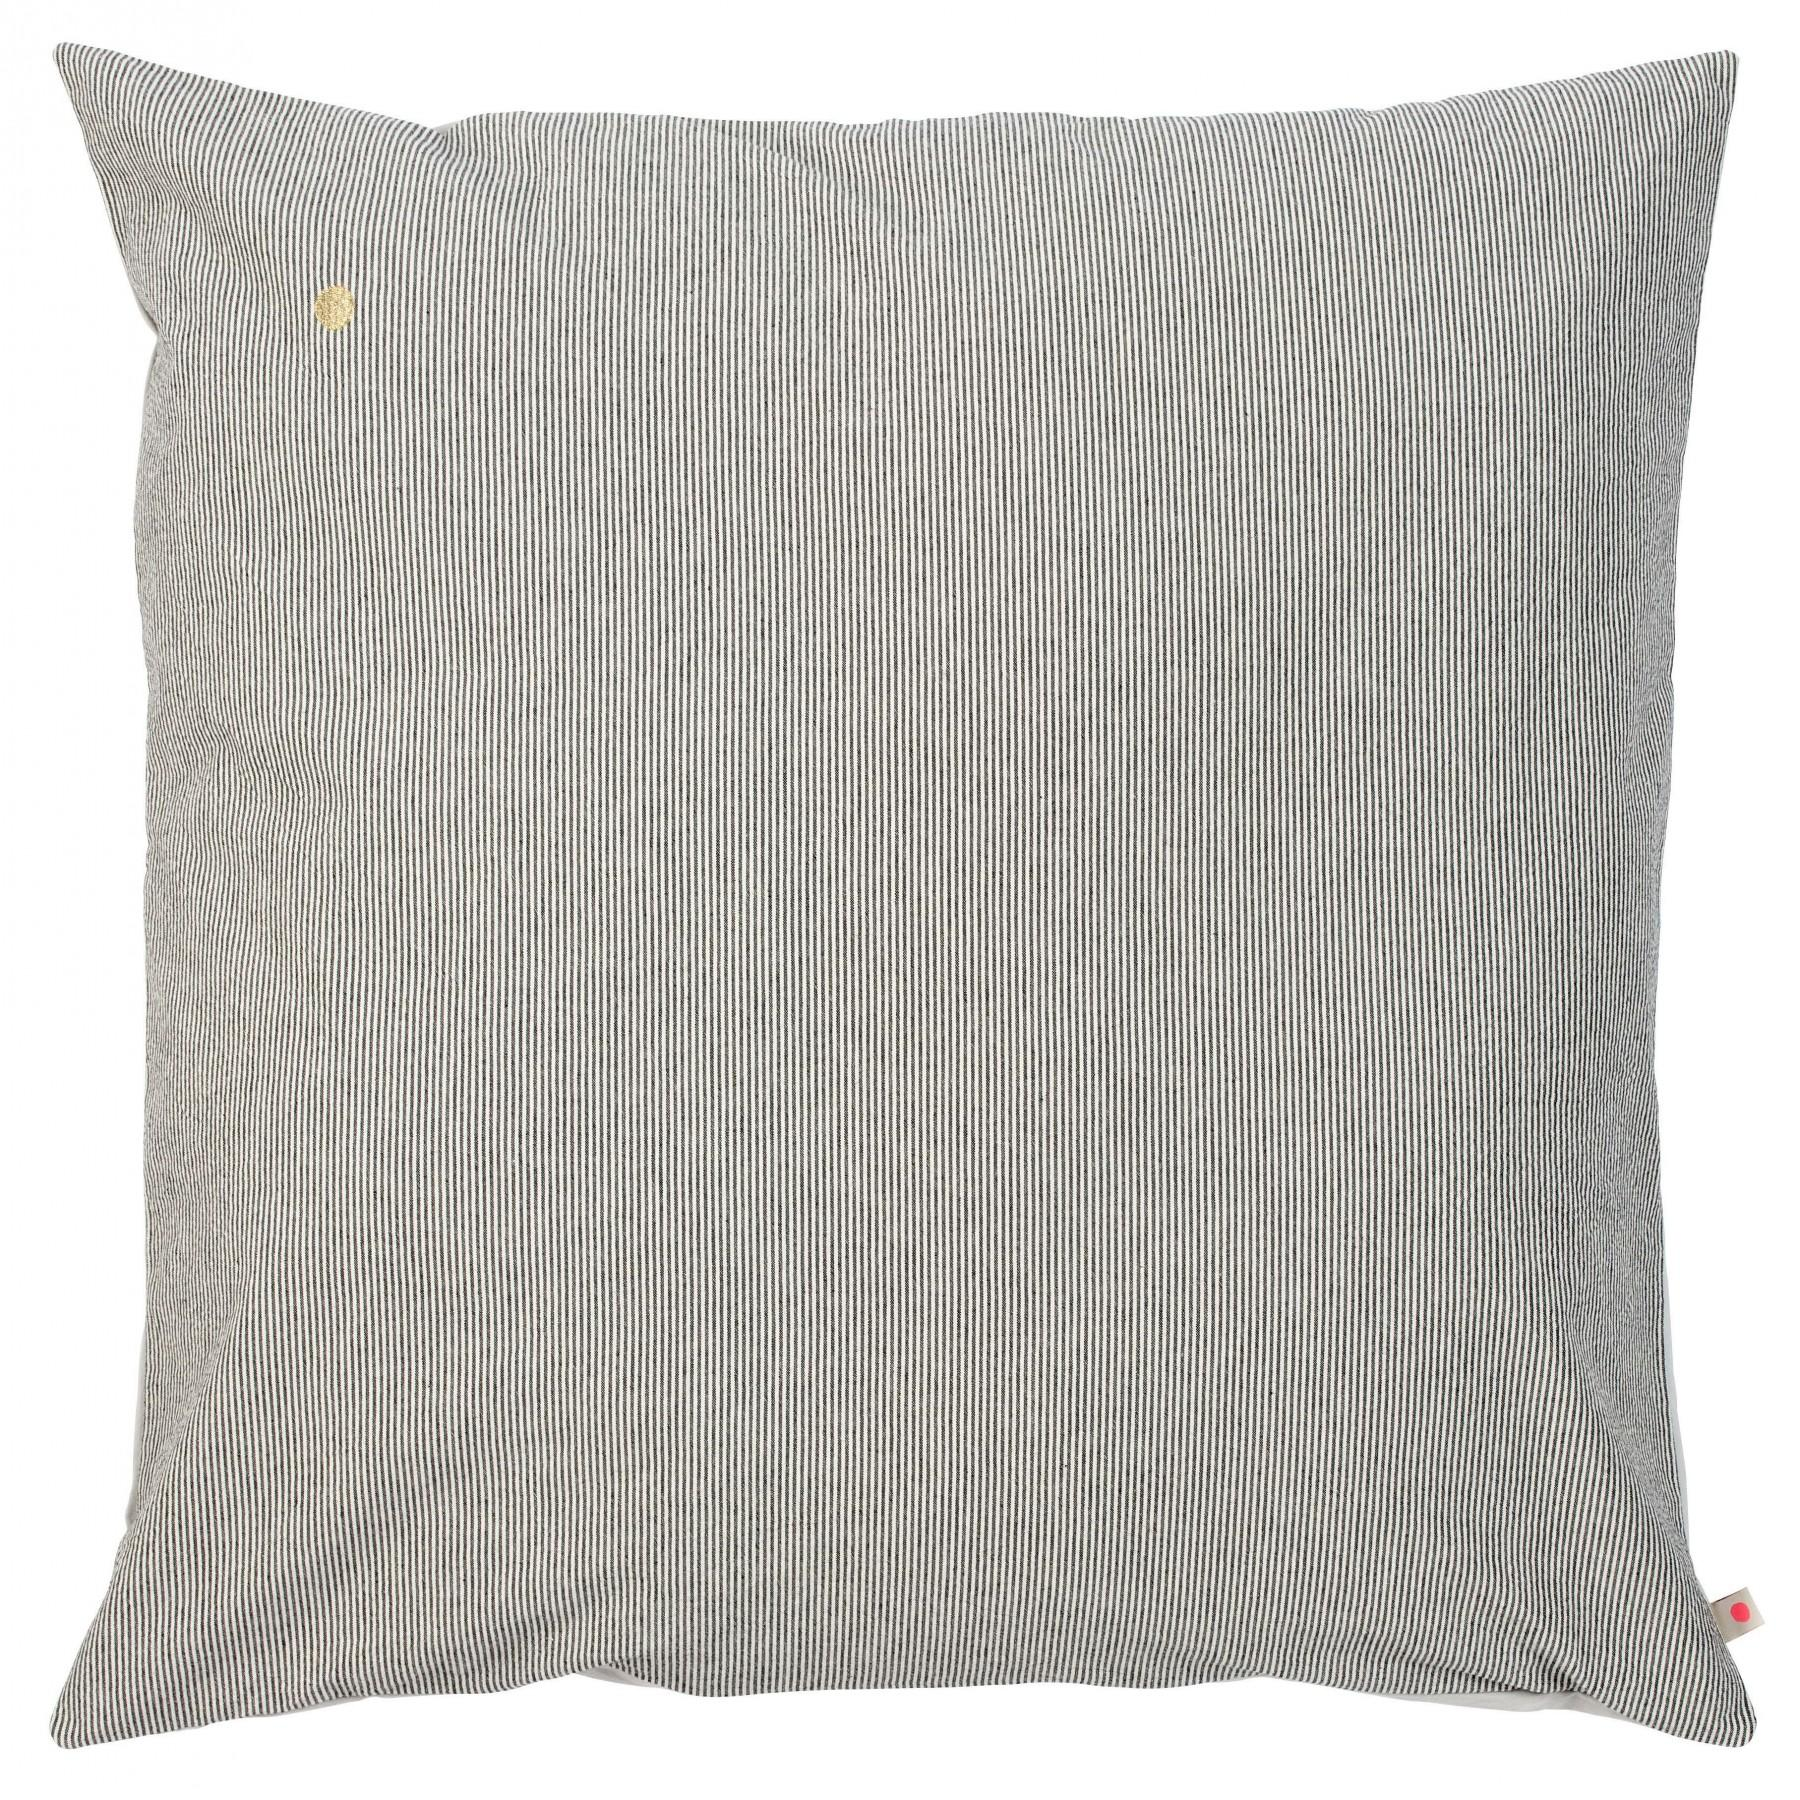 CUSHION COVER FINETTE CAVIAR 78